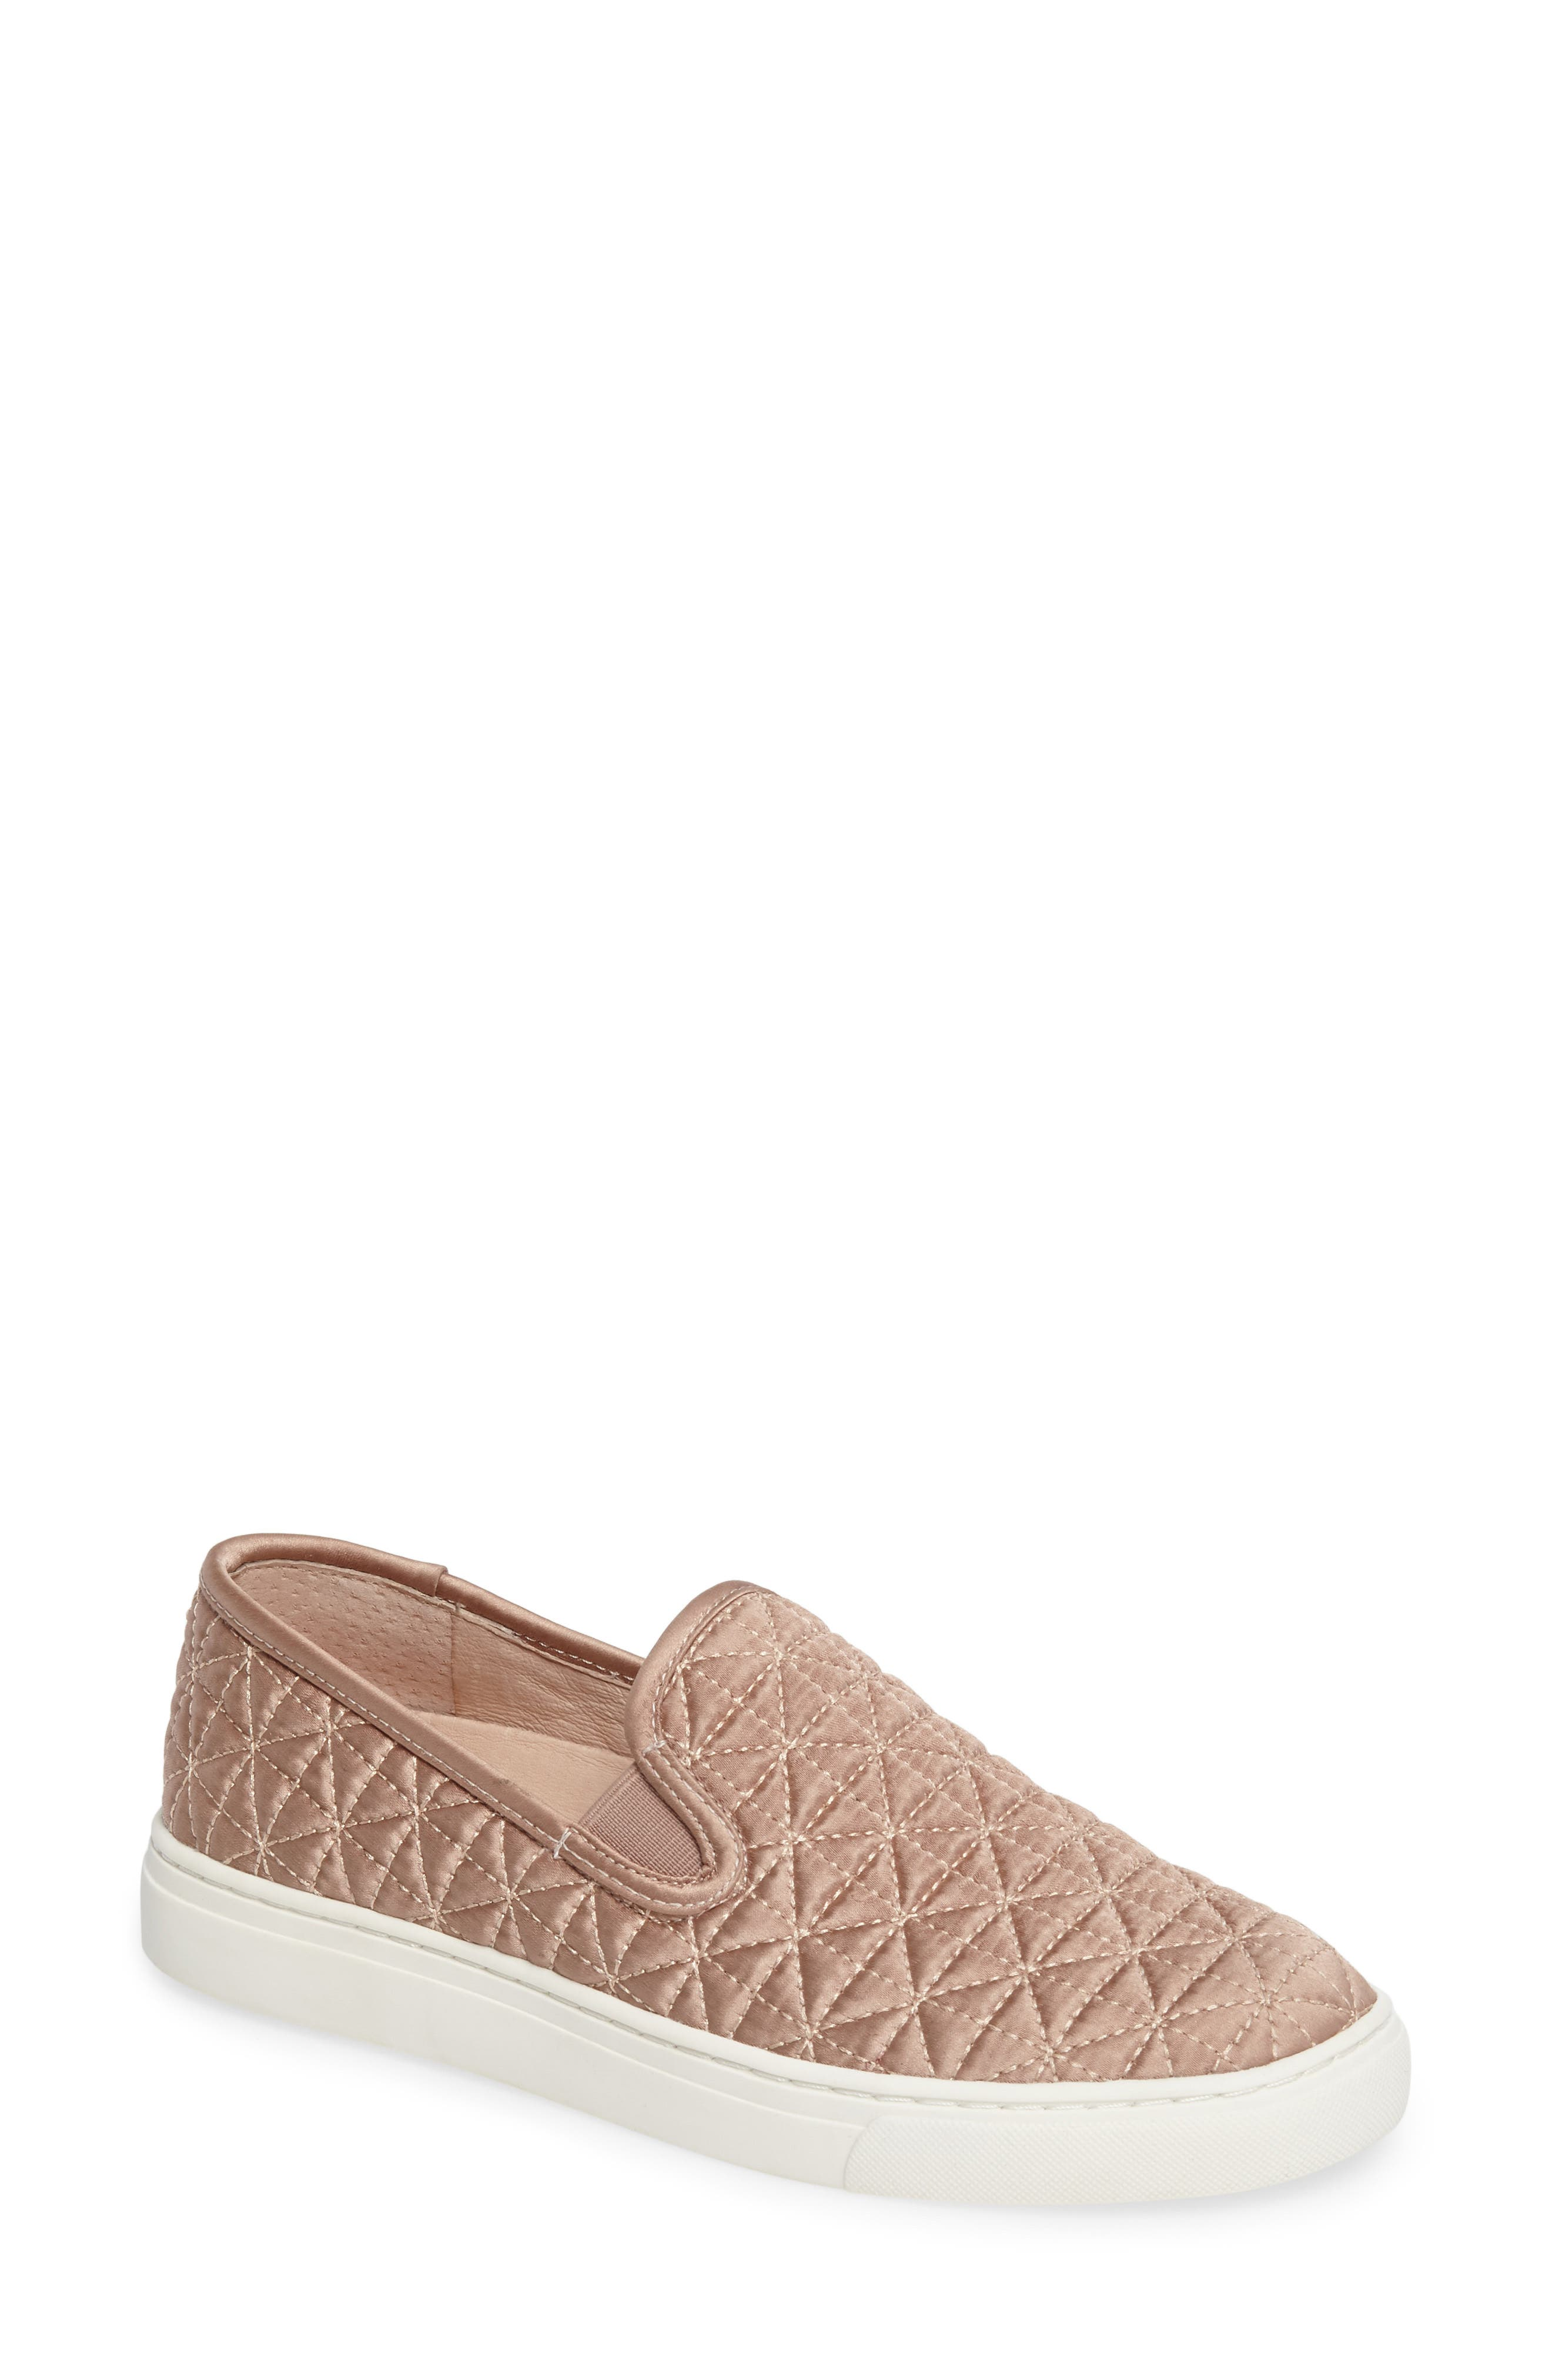 Alternate Image 1 Selected - Vince Camuto Billena Quilted Slip-On Sneaker (Women)